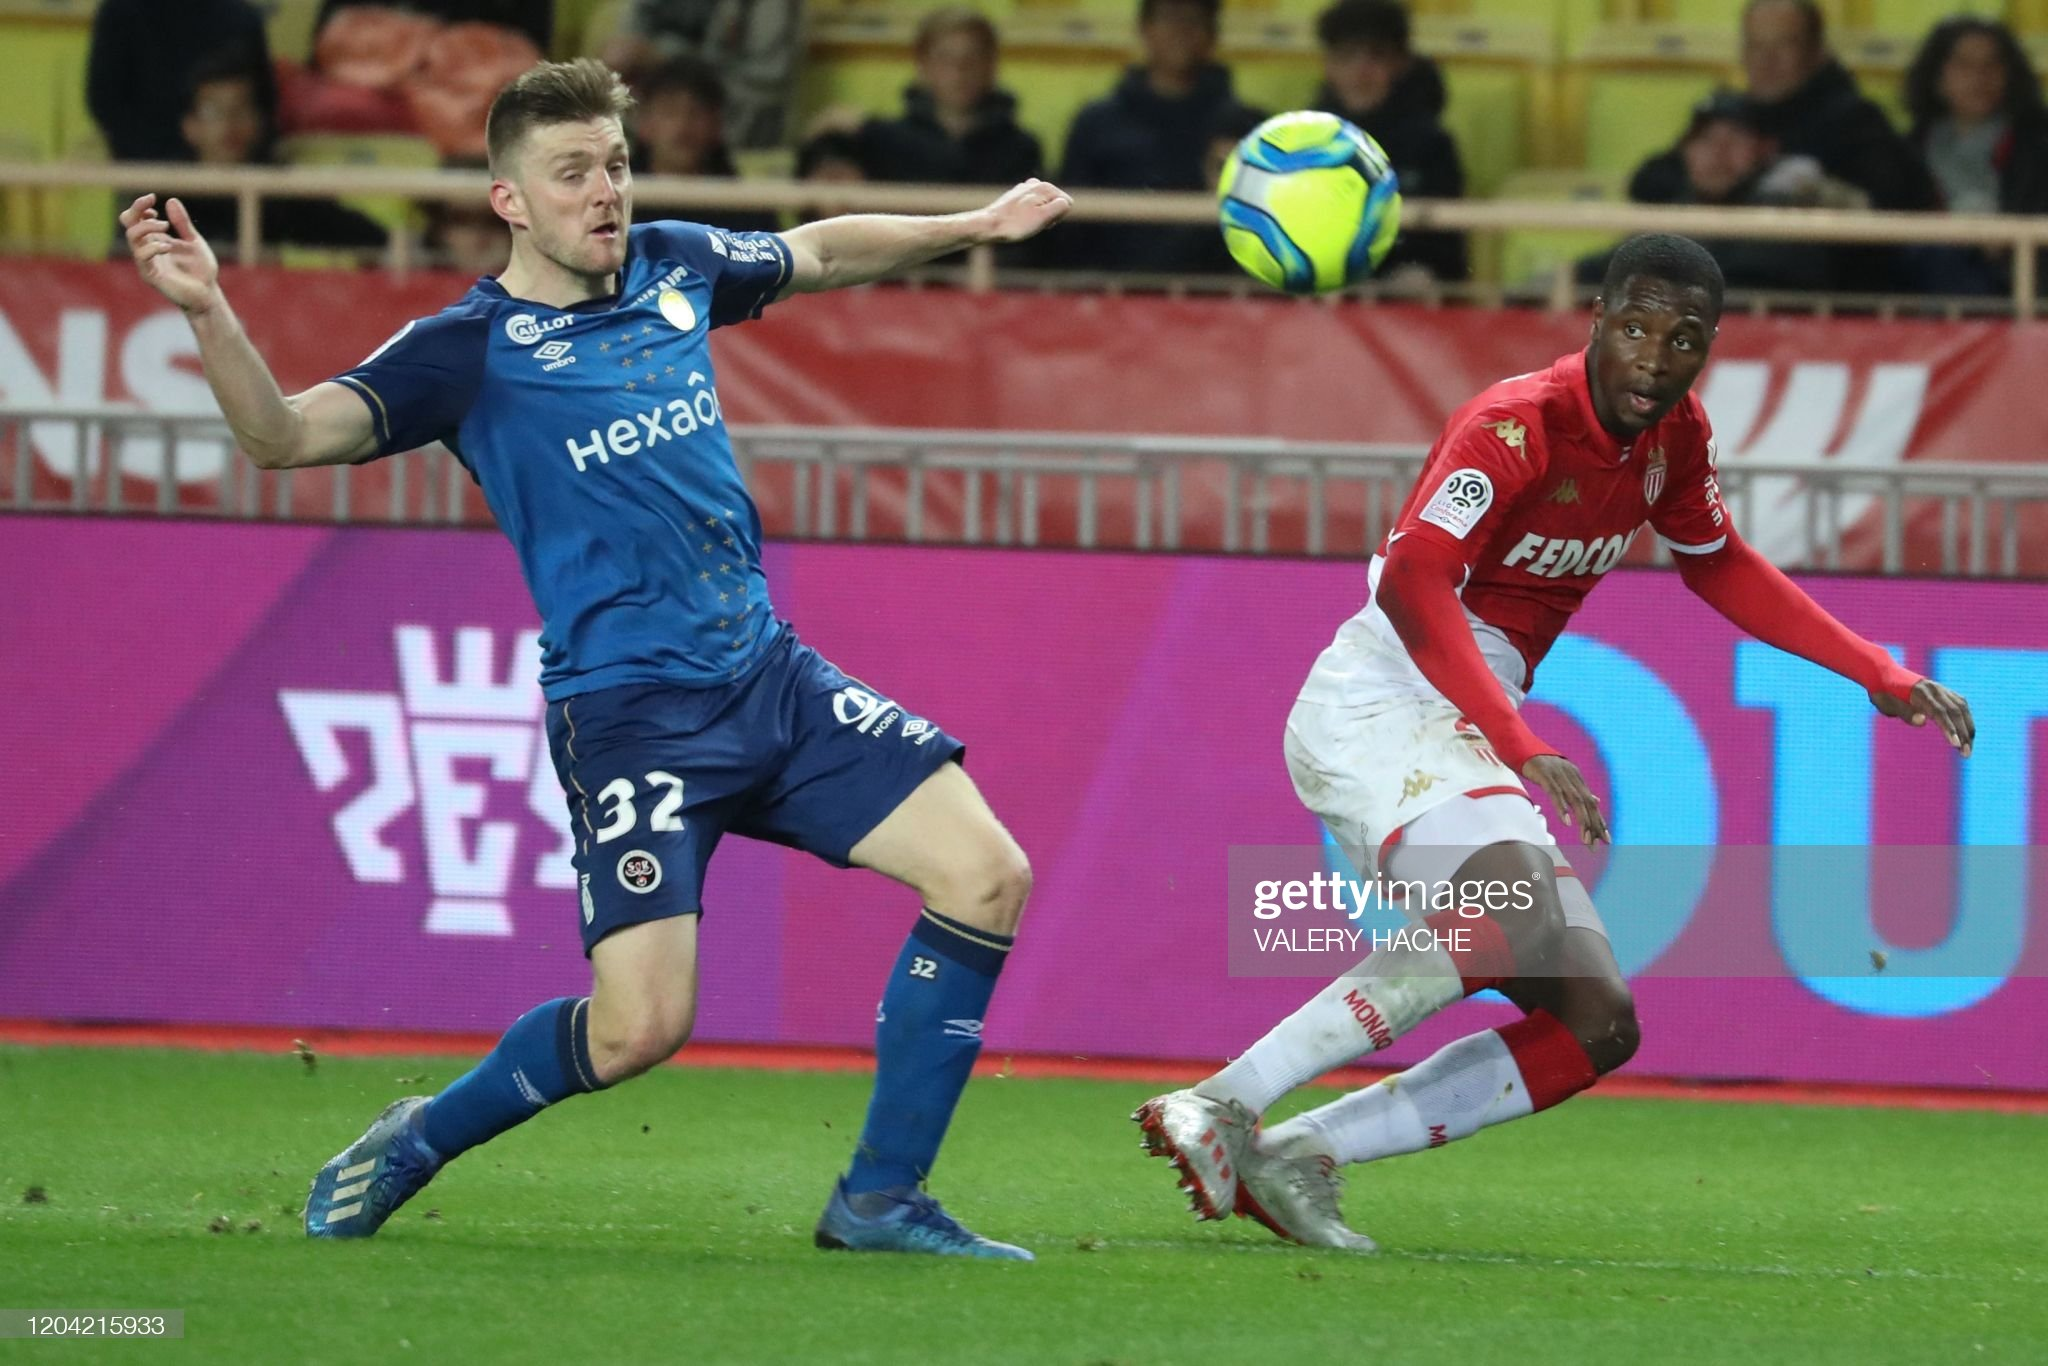 Monaco vs Reims preview, prediction and odds